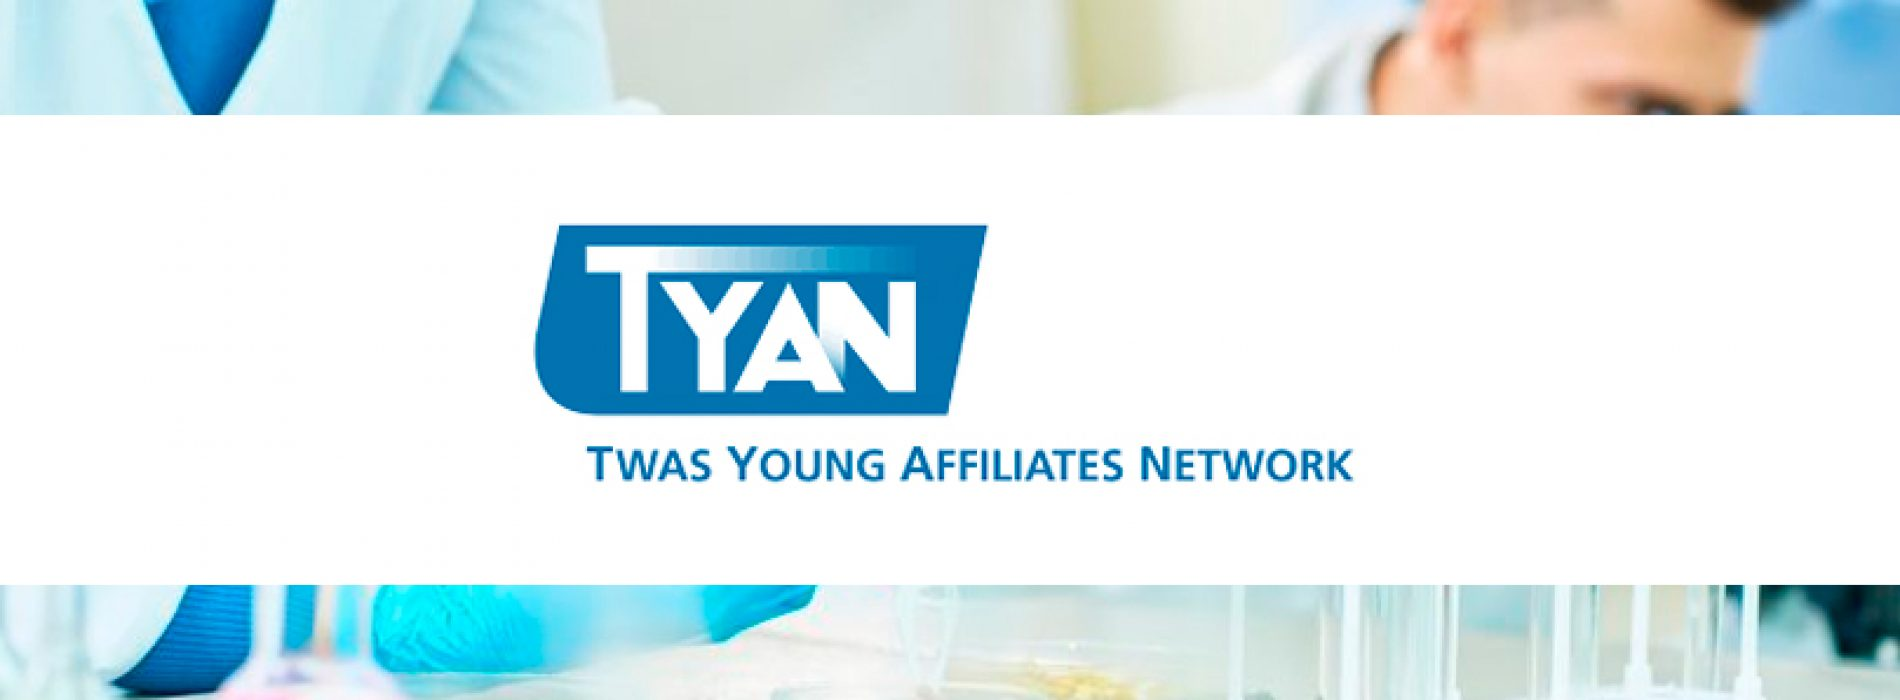 4th Tyan Internacional Thematic Workshop and 1st African Symposium